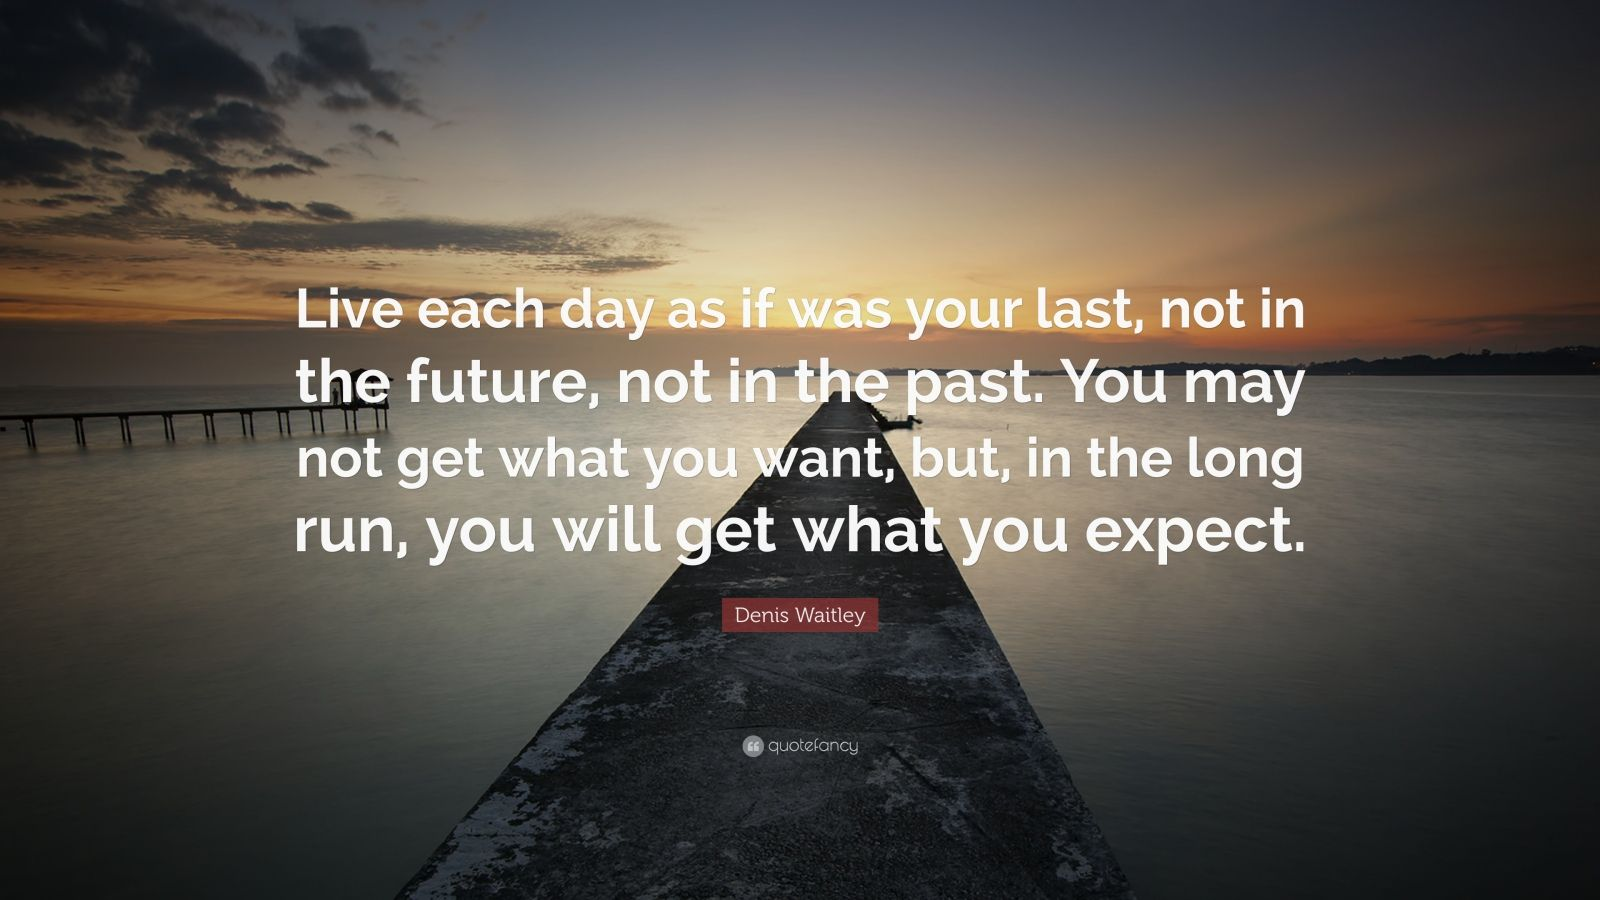 "Denis Waitley Quote: ""Live each day as if was your last, not in the future, not in the past. You may not get what you want, but, in the long run, you will get what you expect."""